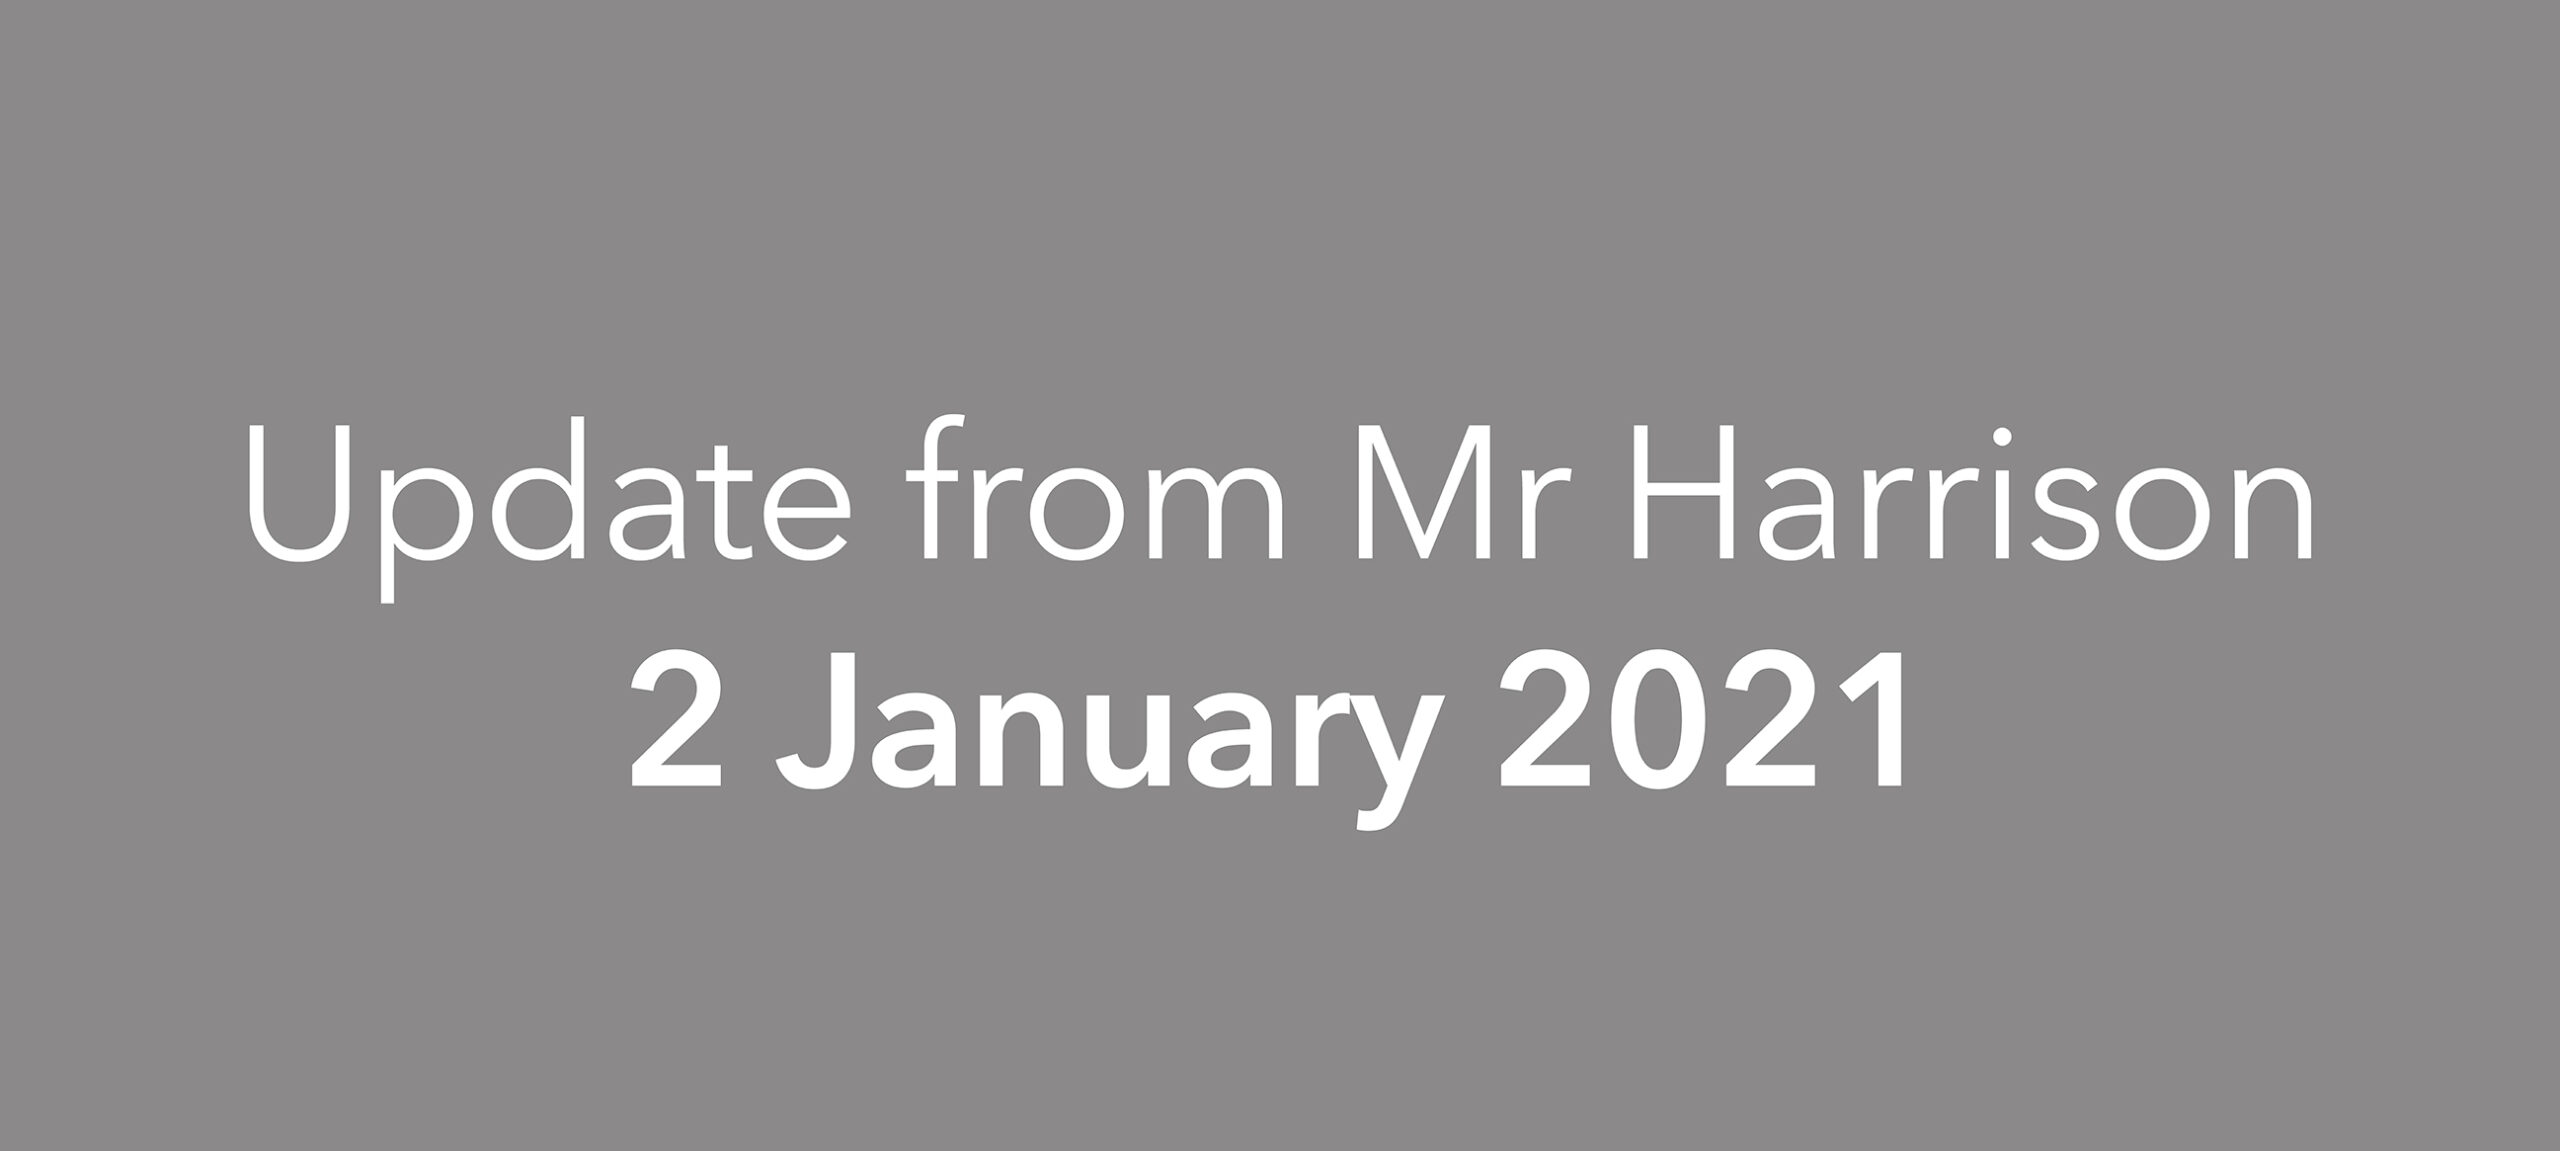 Update from Mr Harrison, 2 January 2021